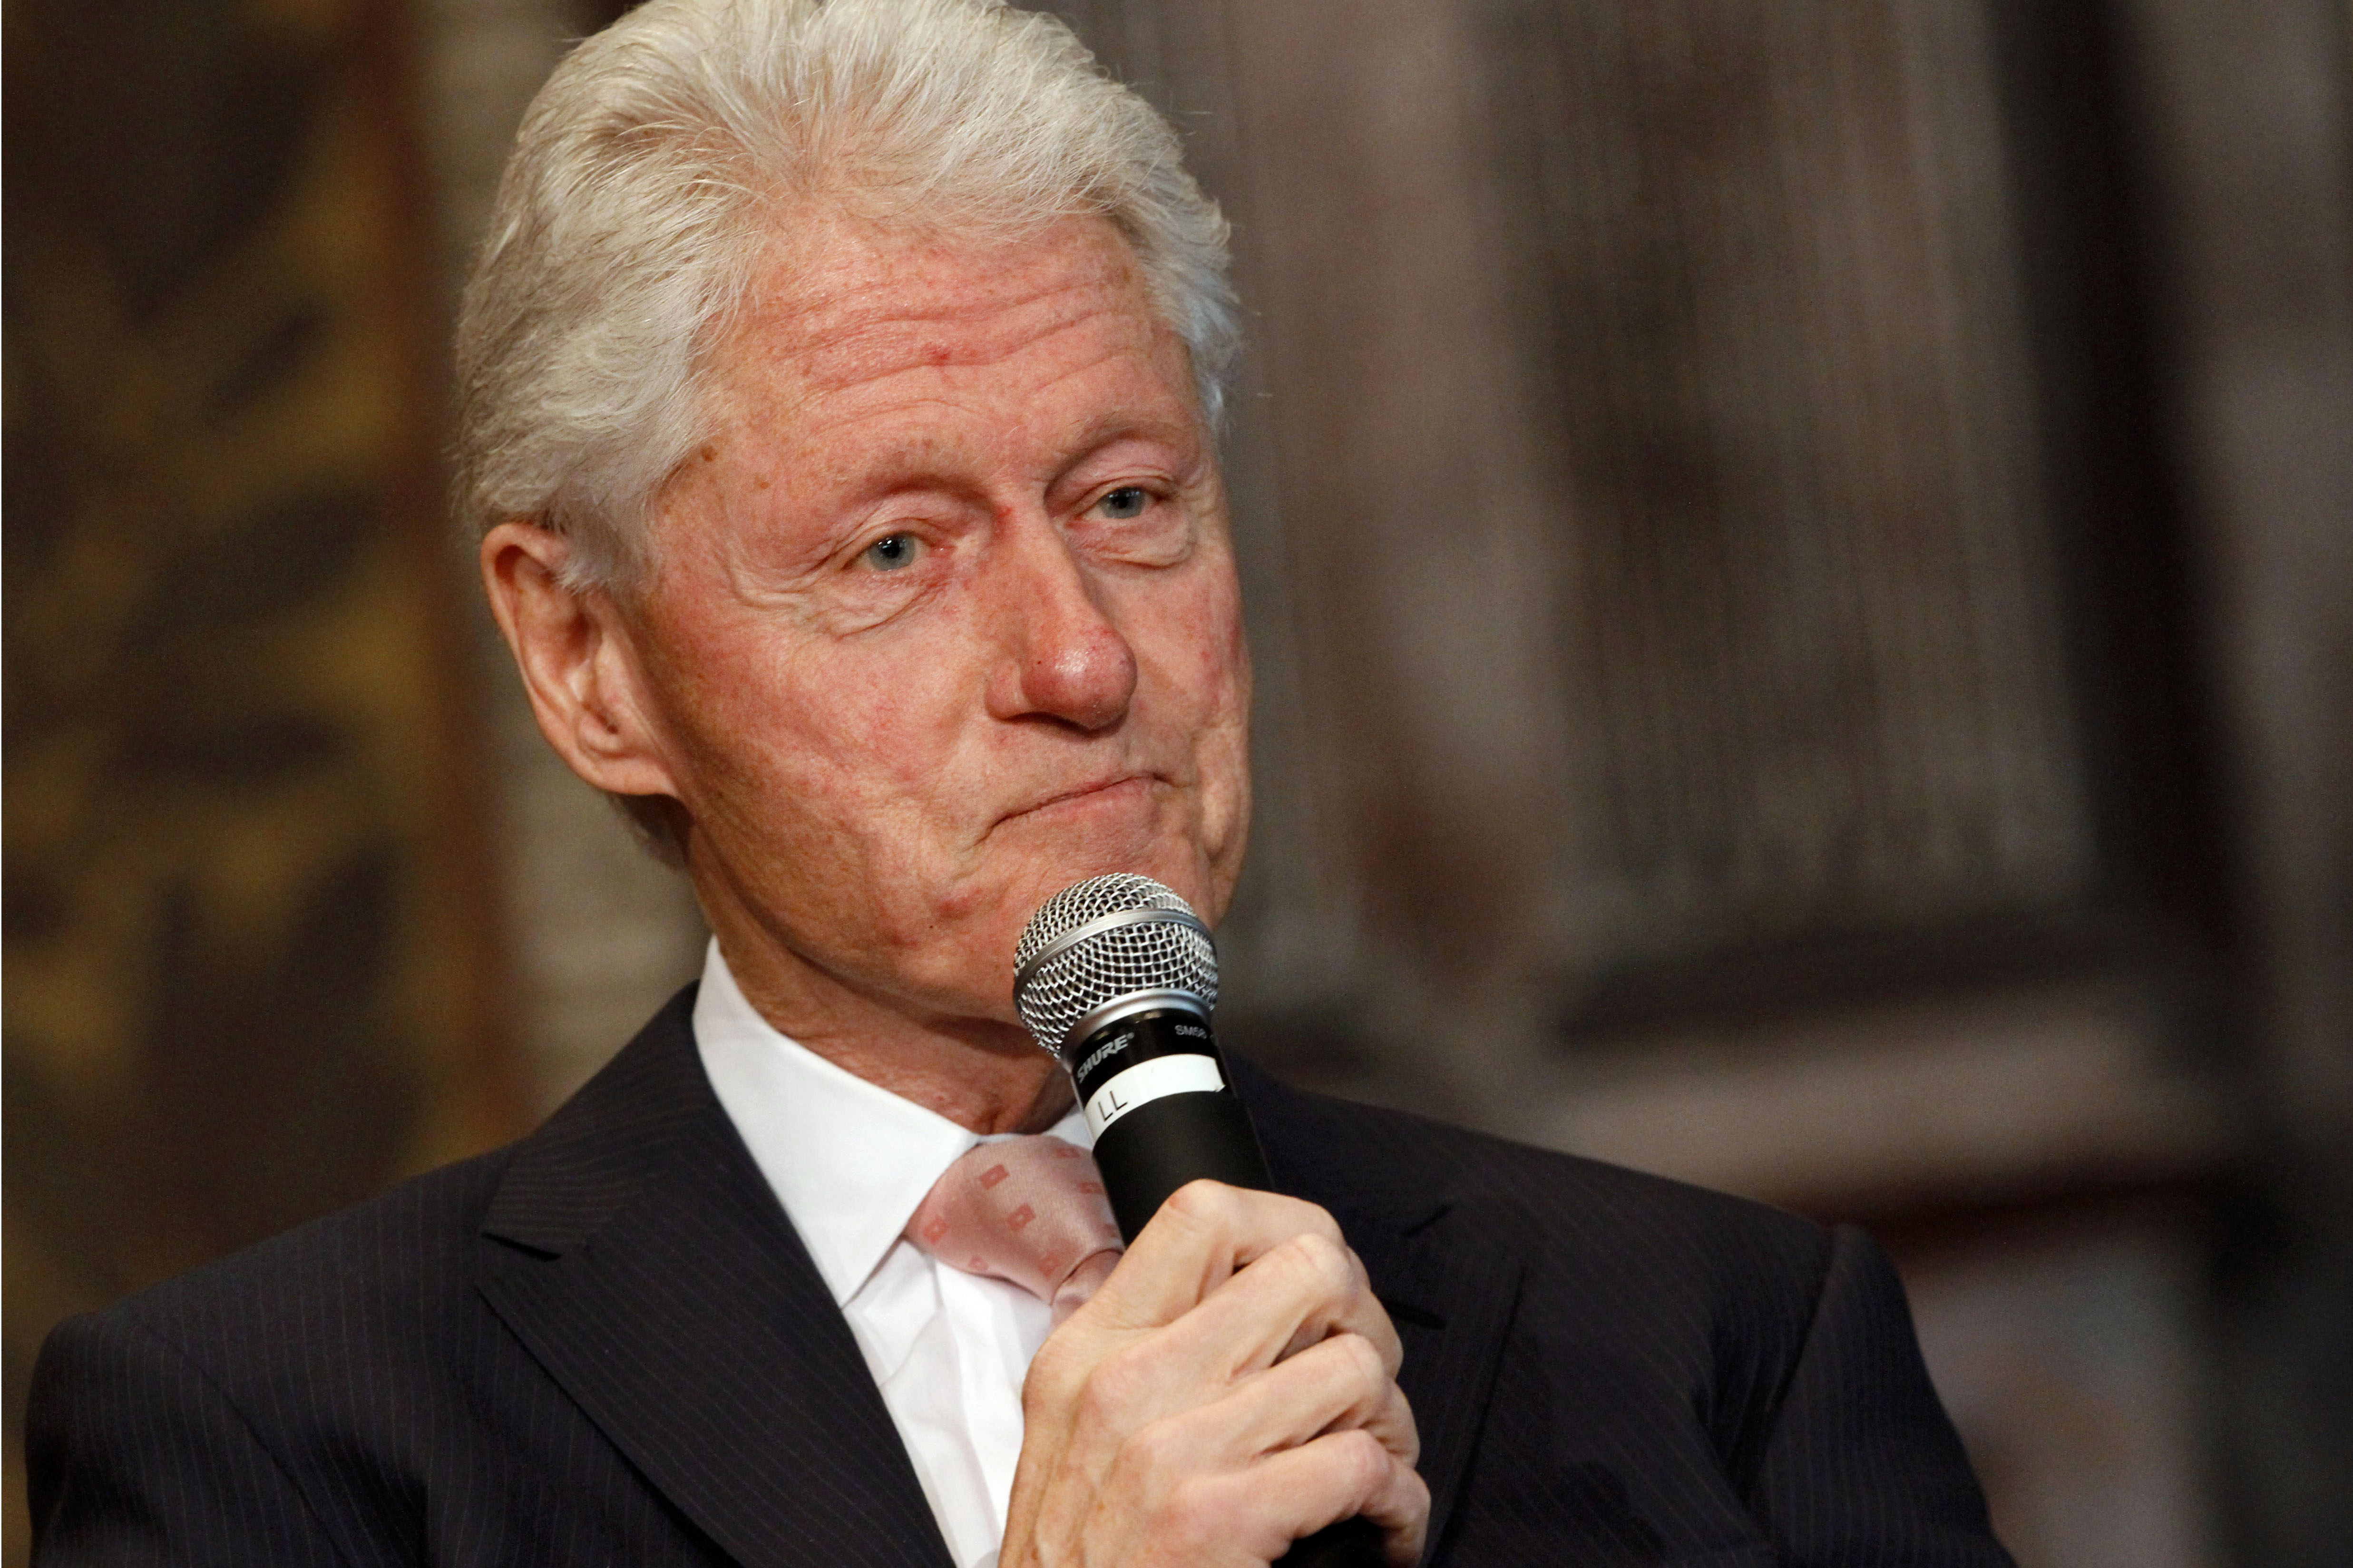 Former President Bill Clinton listens to a question after speaking at Georgetown University in Washington on April 21, 2015.